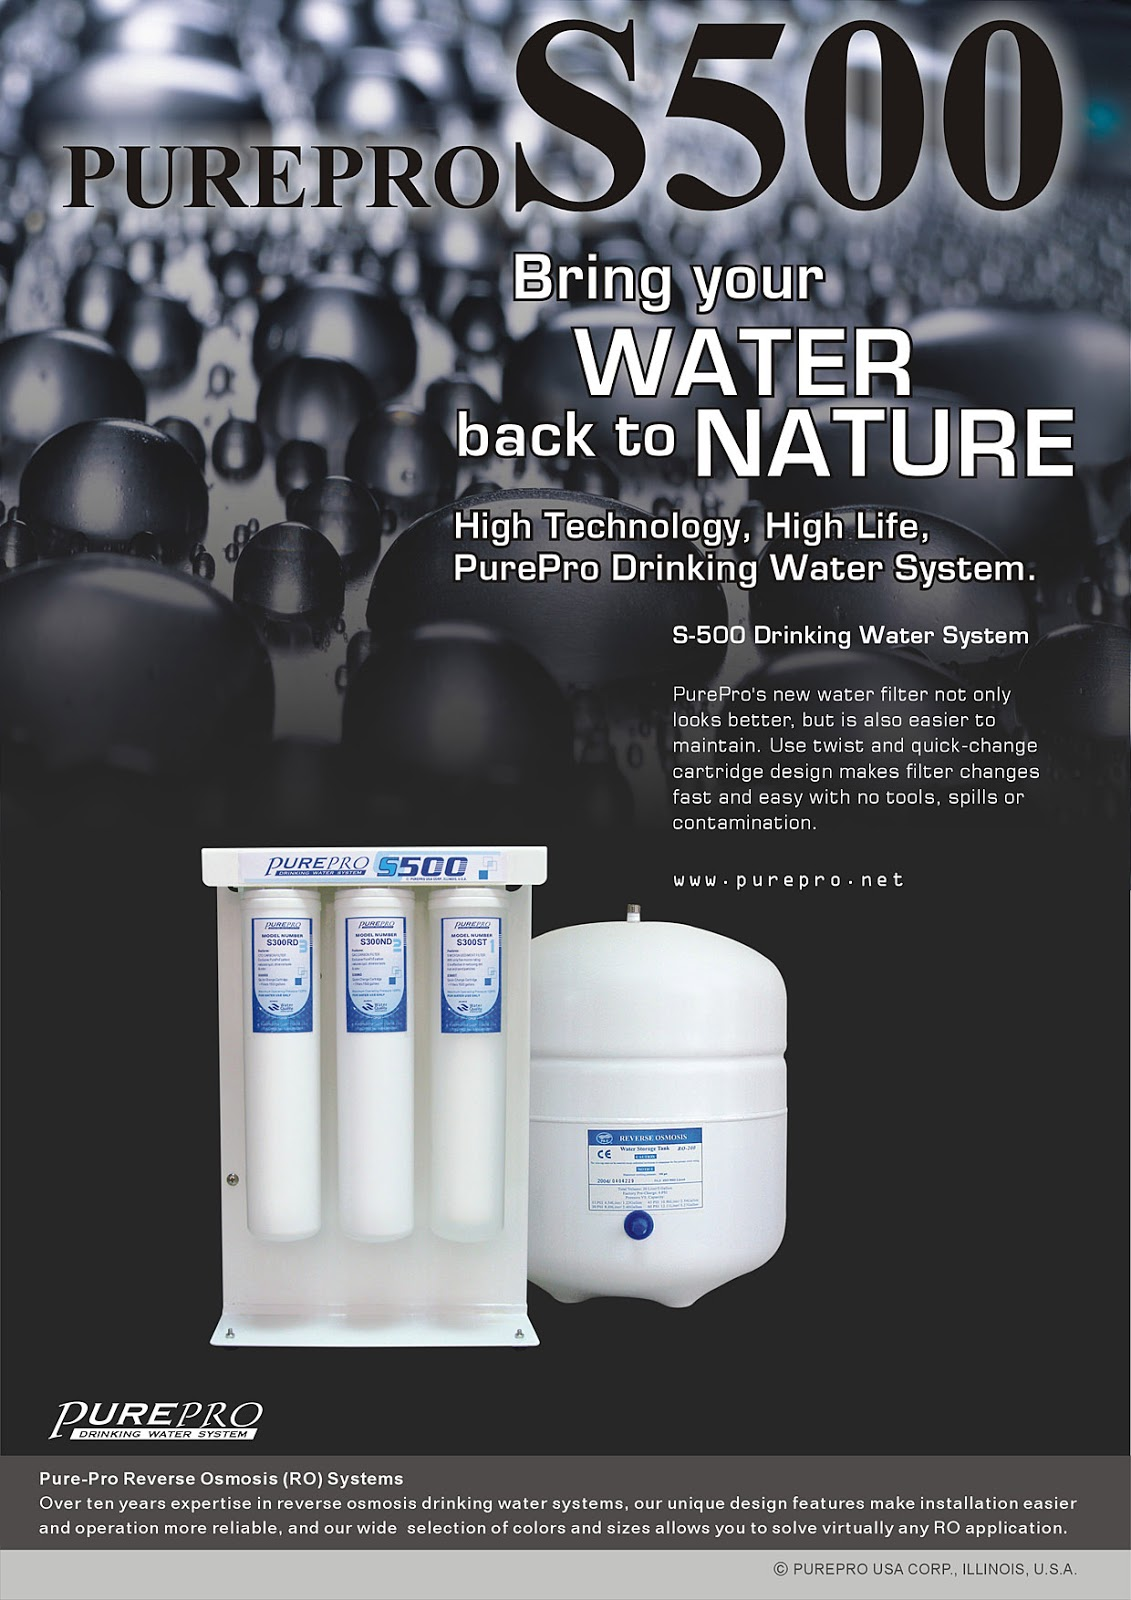 PurePro® S500 Reverse Osmosis Water Filtration System